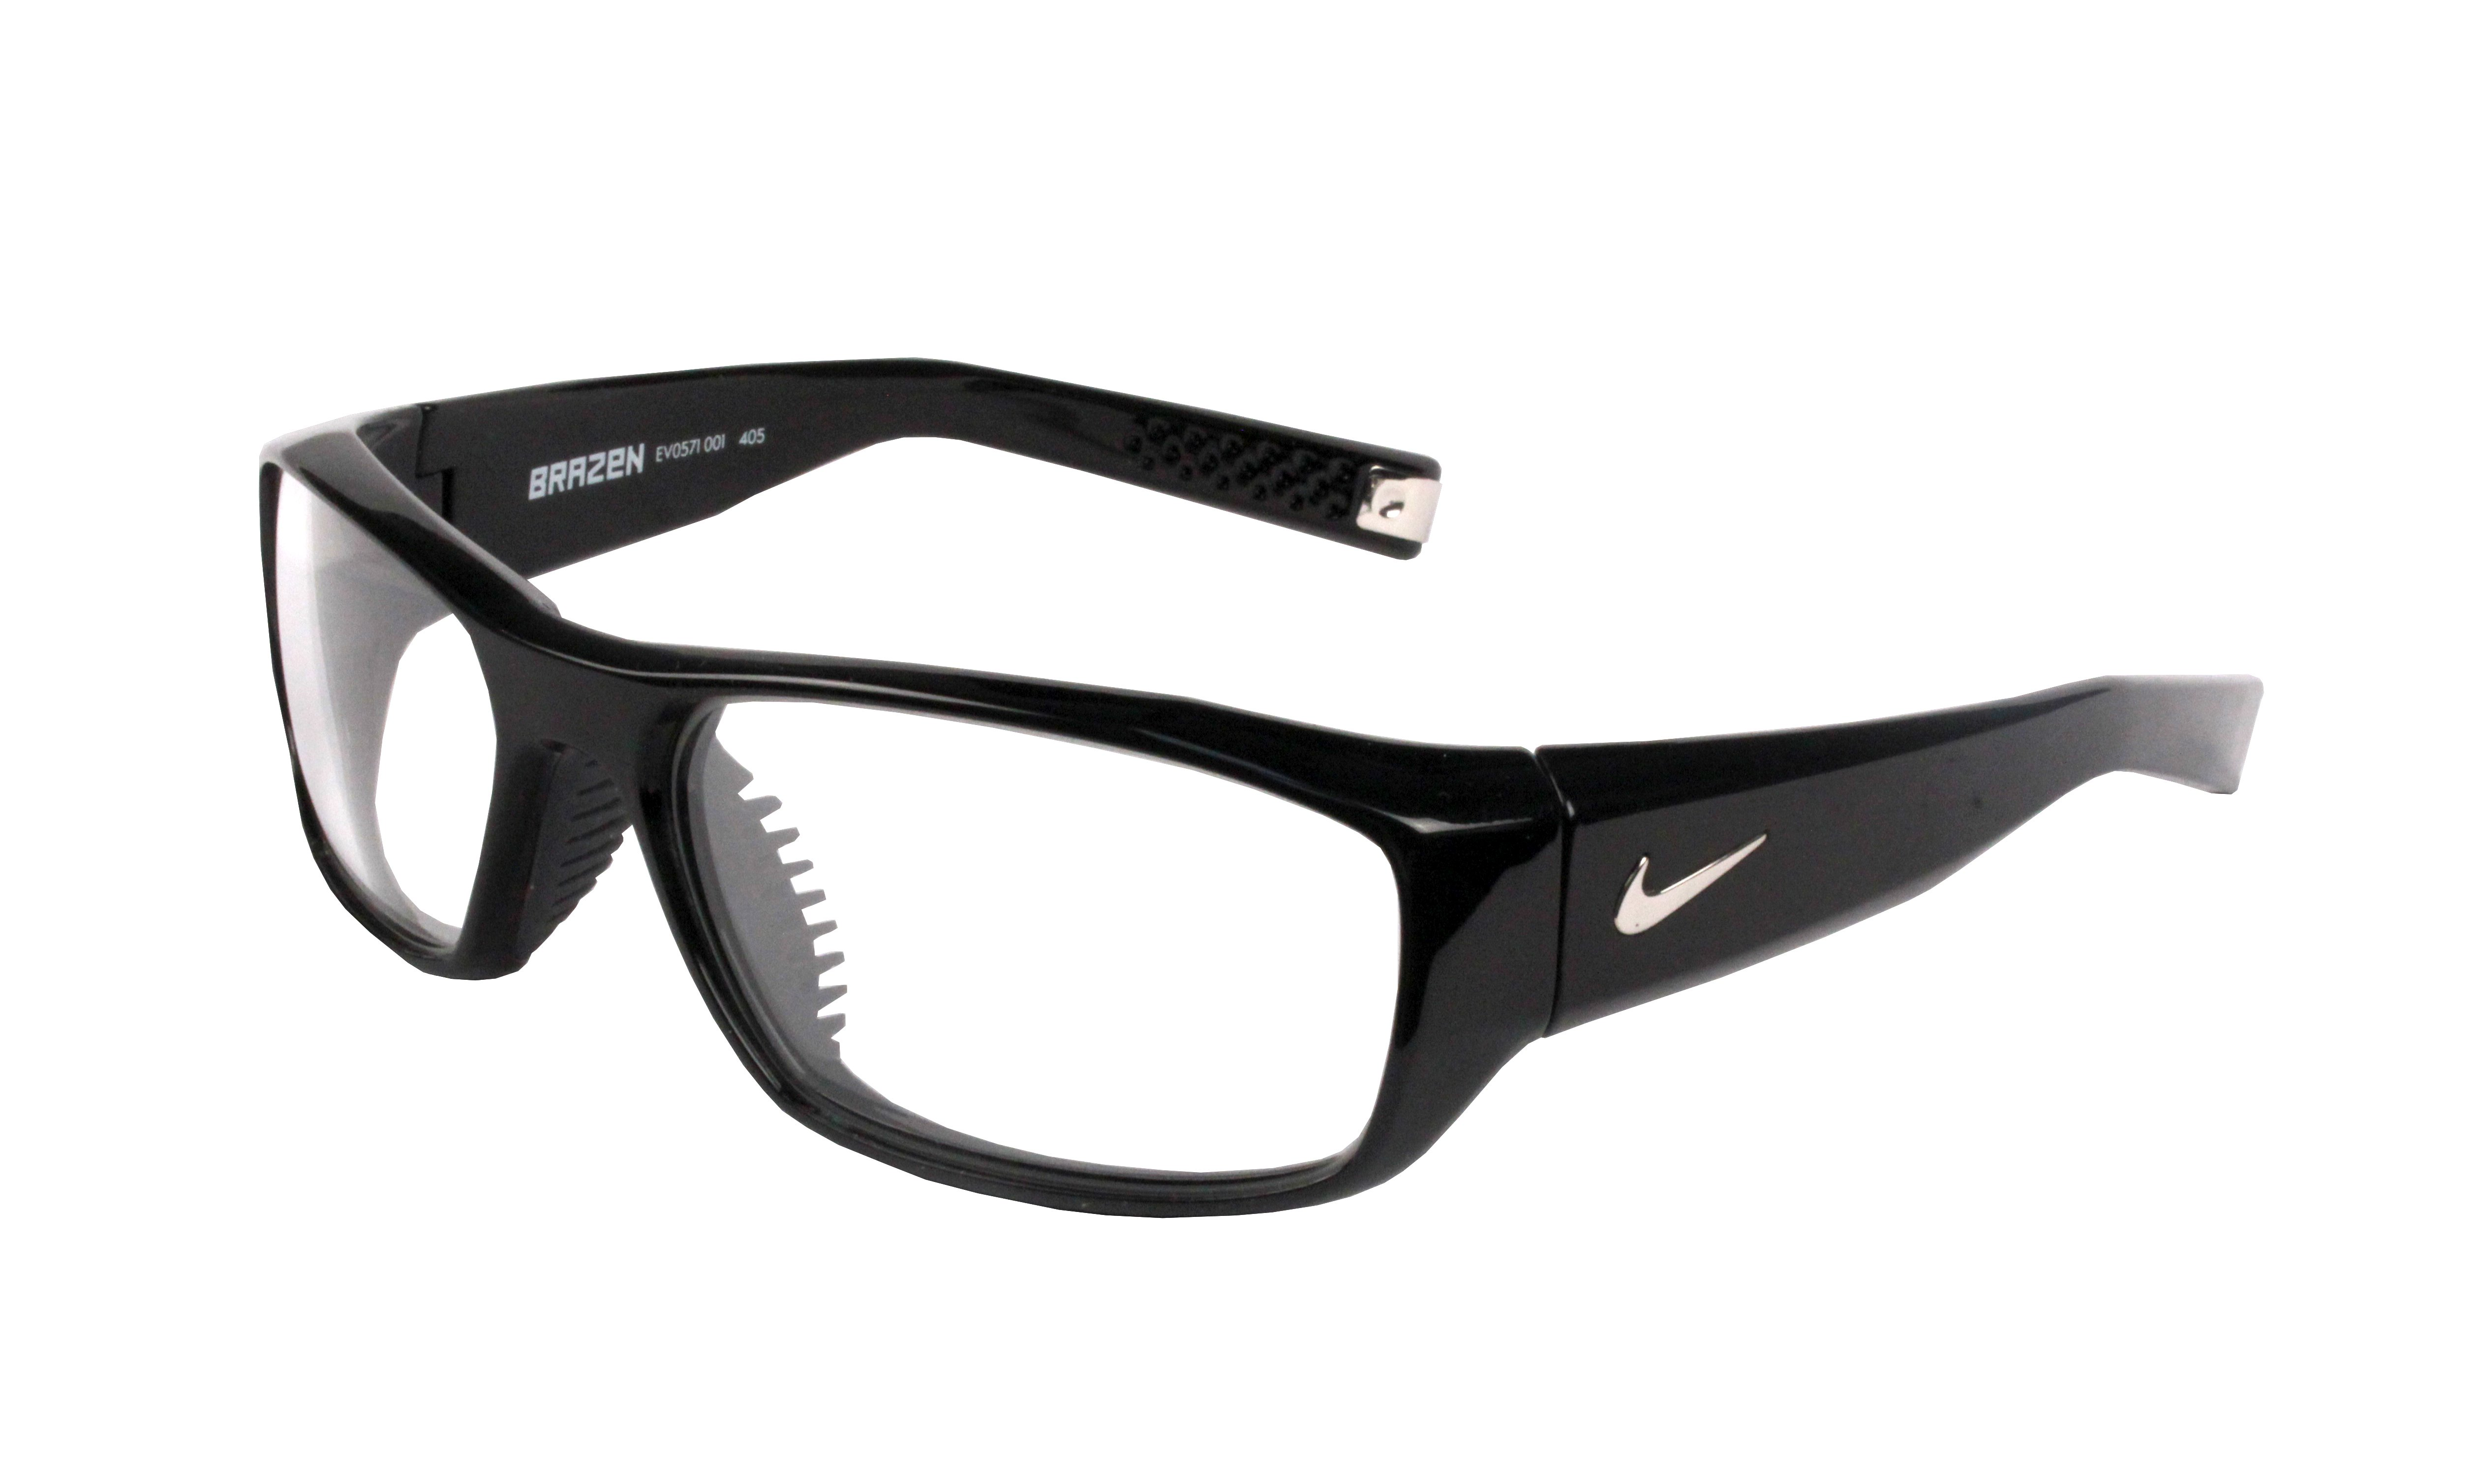 Nike Brazen Glasses Black